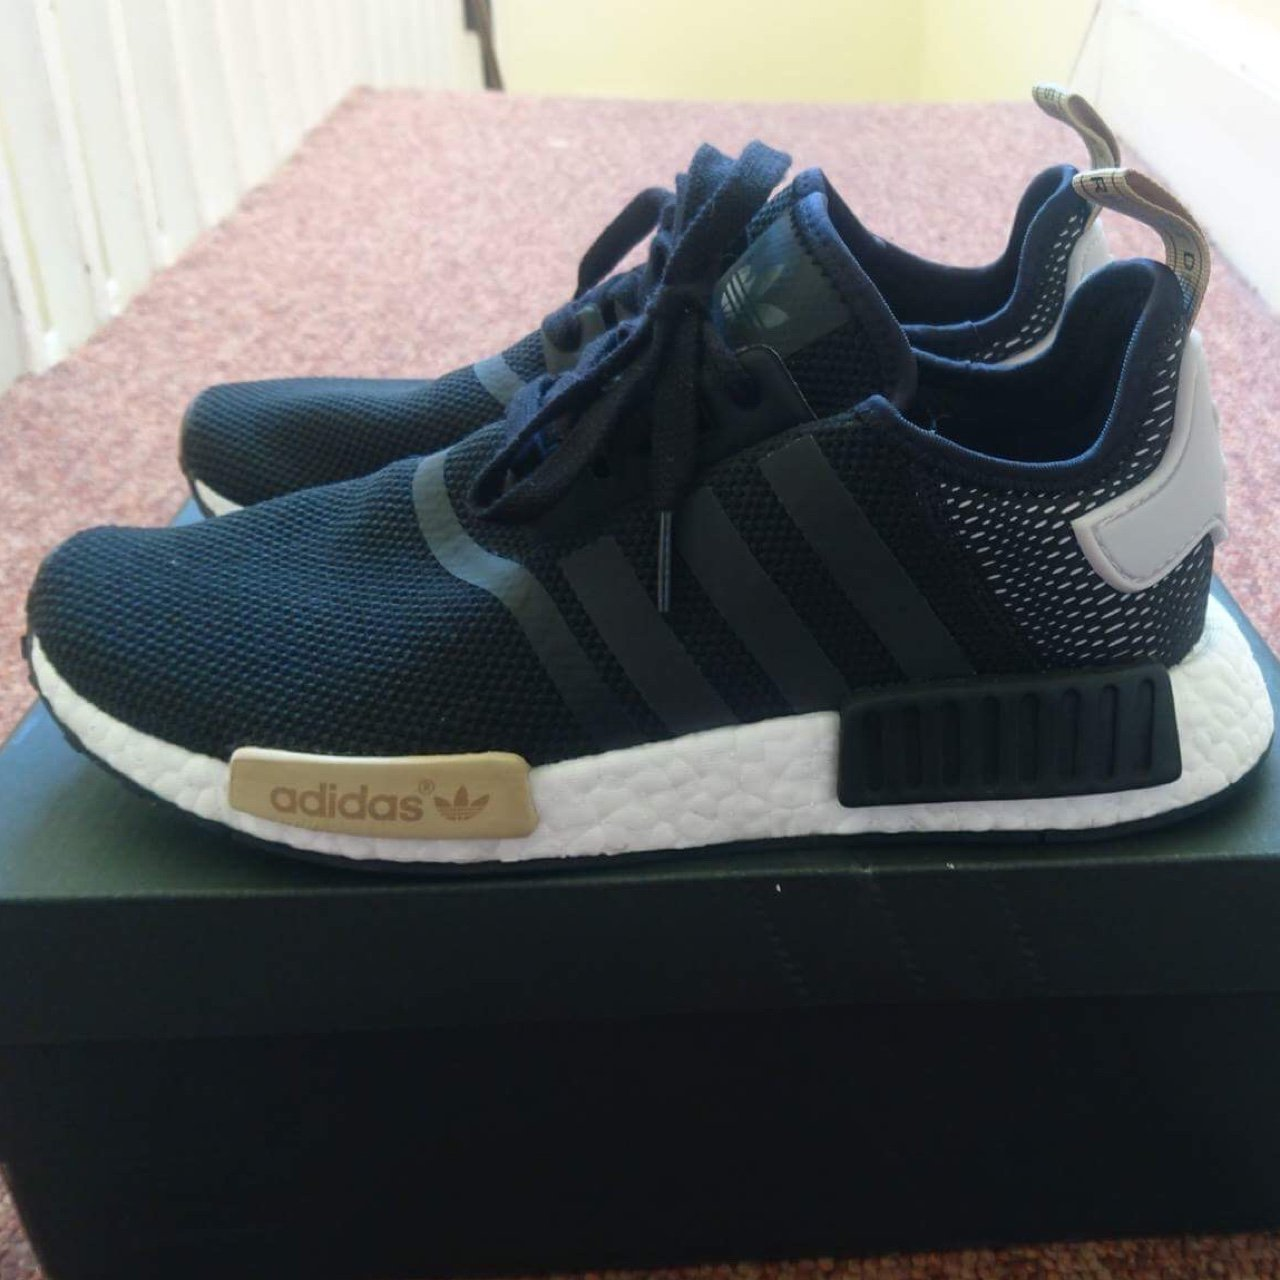 7b8acbf46 ADIDAS NMD R1 BLACK ICE PURPLE (BA7751) U.K SIZE 7- worn too - Depop